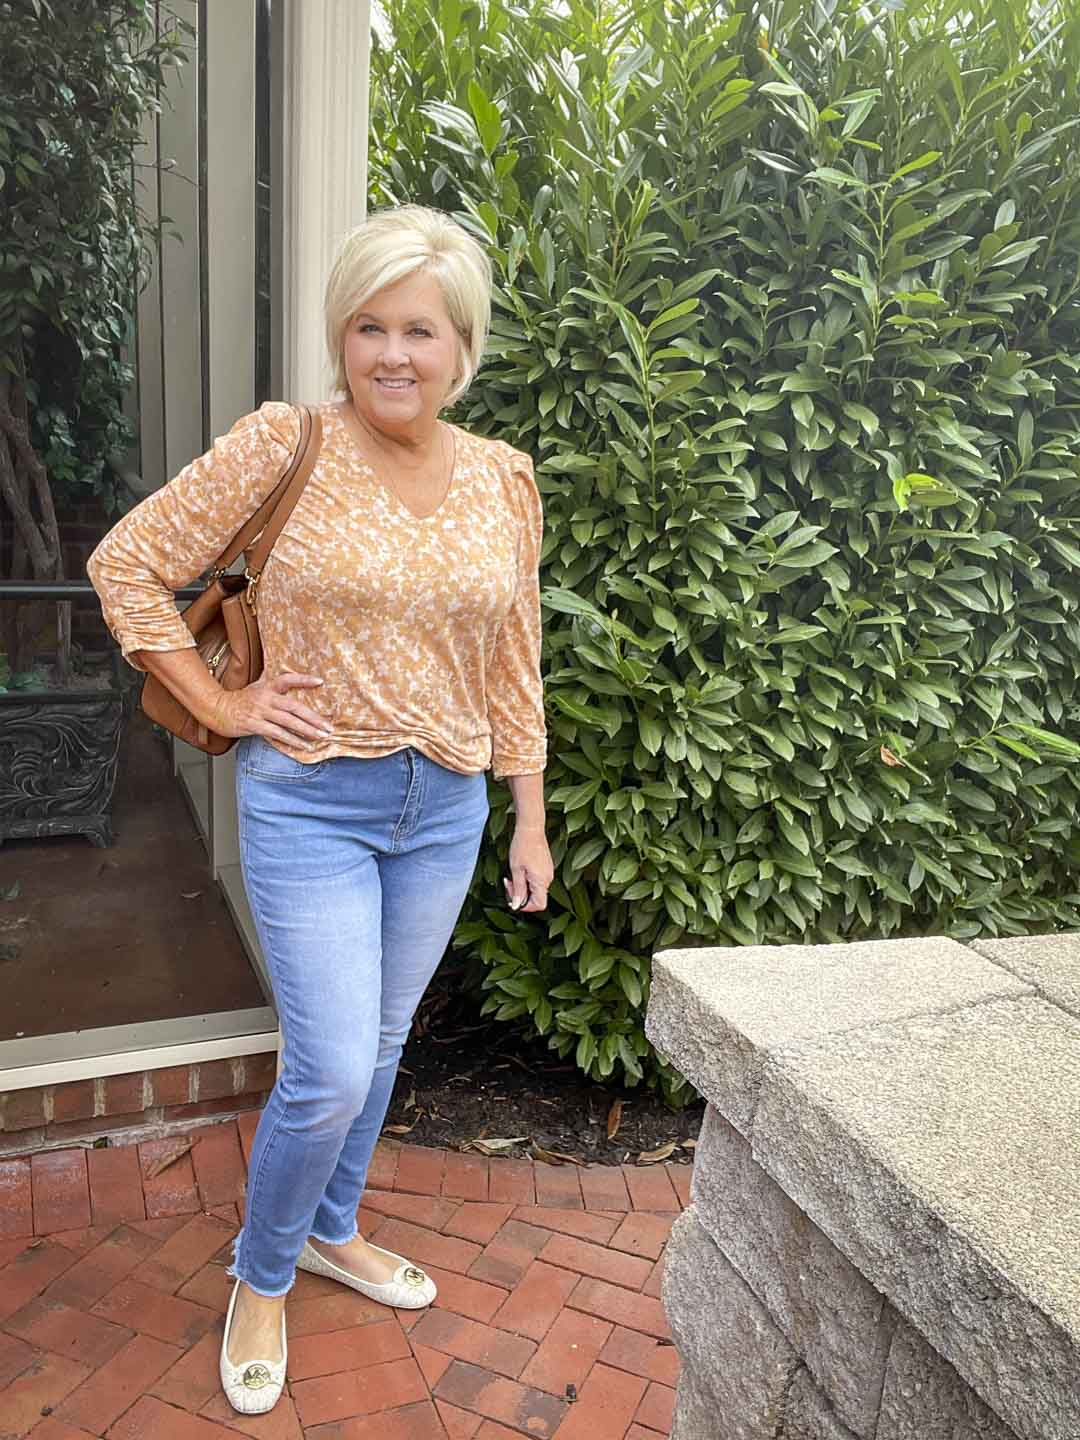 Over 40 Fashion Blogger, Tania Stephens, is wearing one of her puff sleeve tops with a light blue pair of jeans and monogrammed loafers from Michael Kors